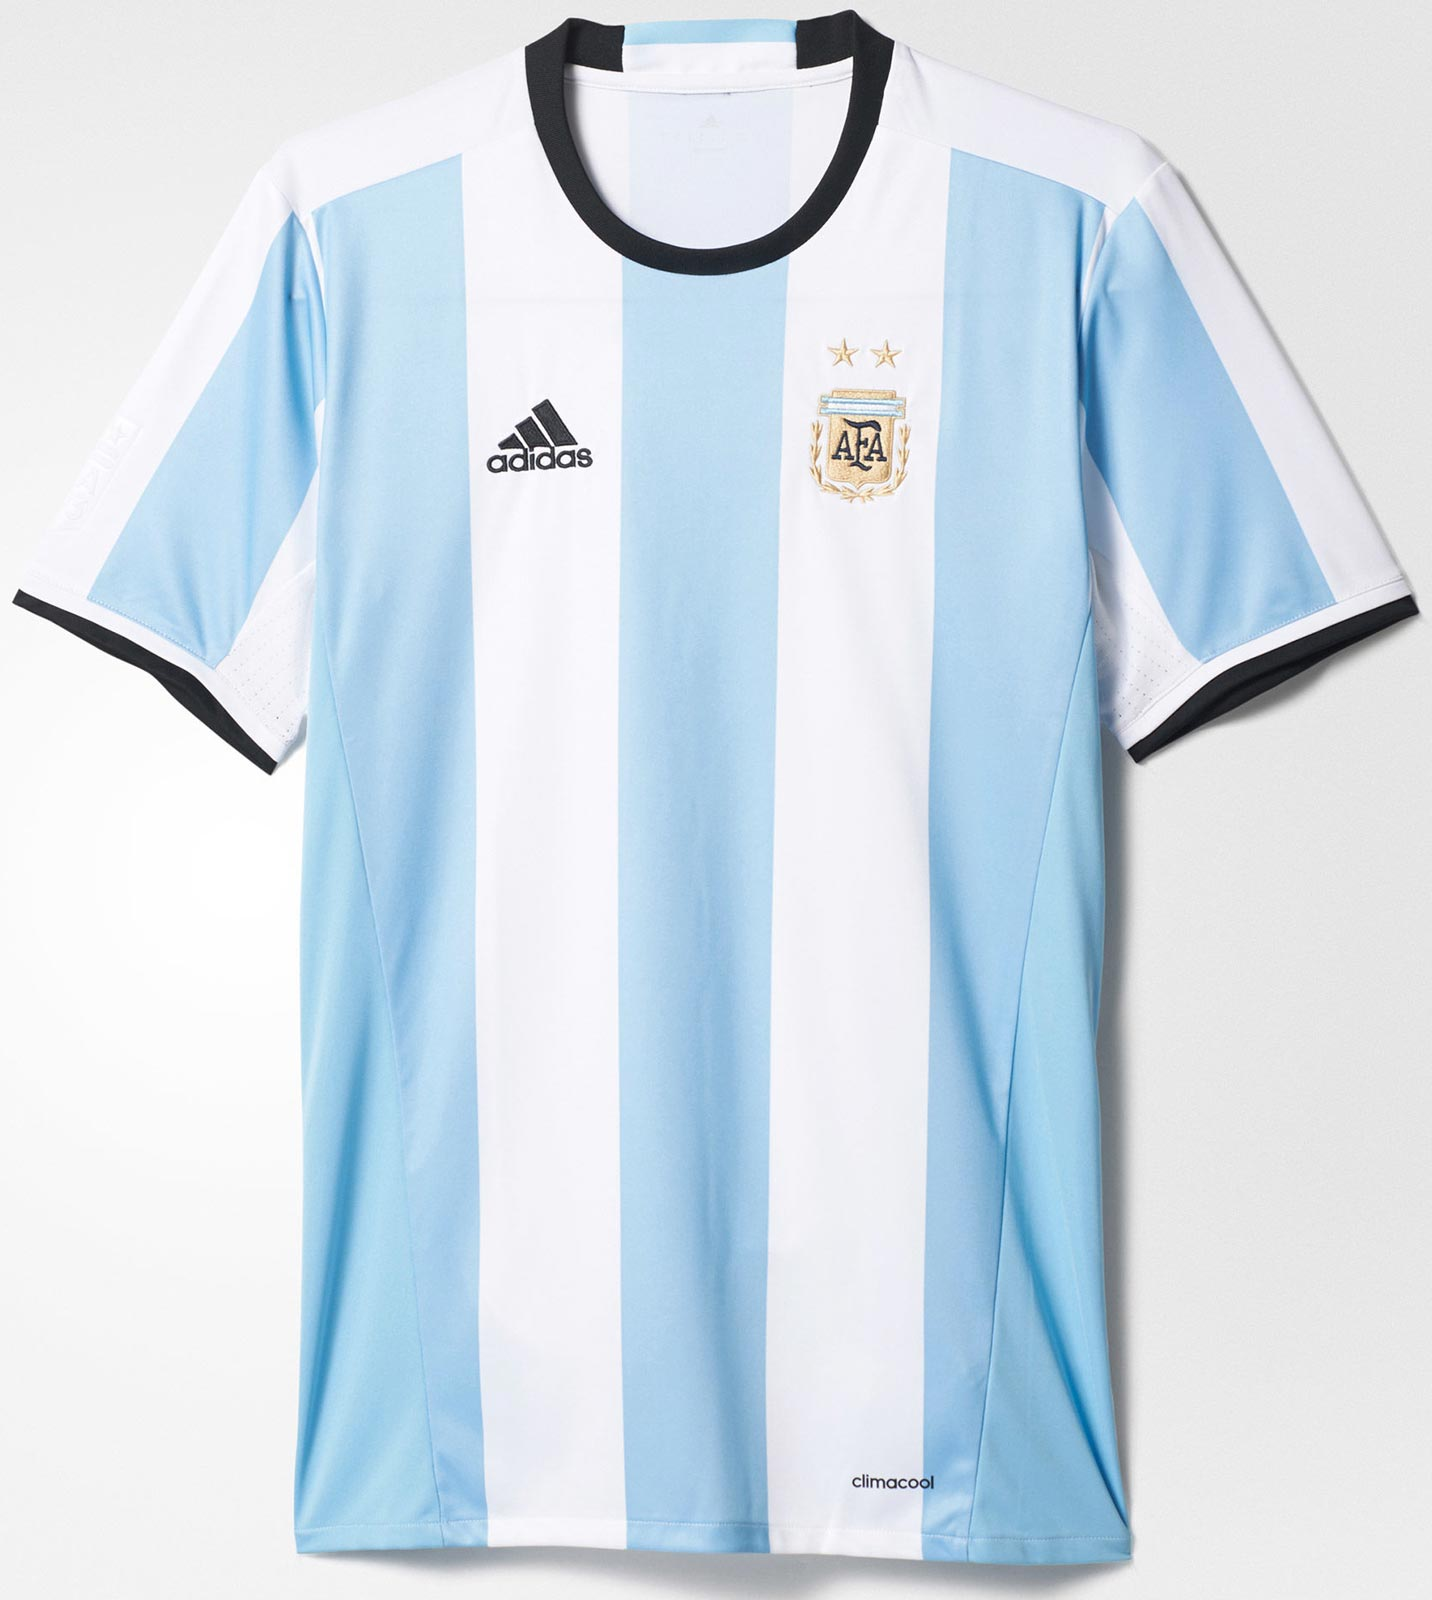 a59d08e79d0b Design Your Own Adidas Football Shirt - BCD Tofu House